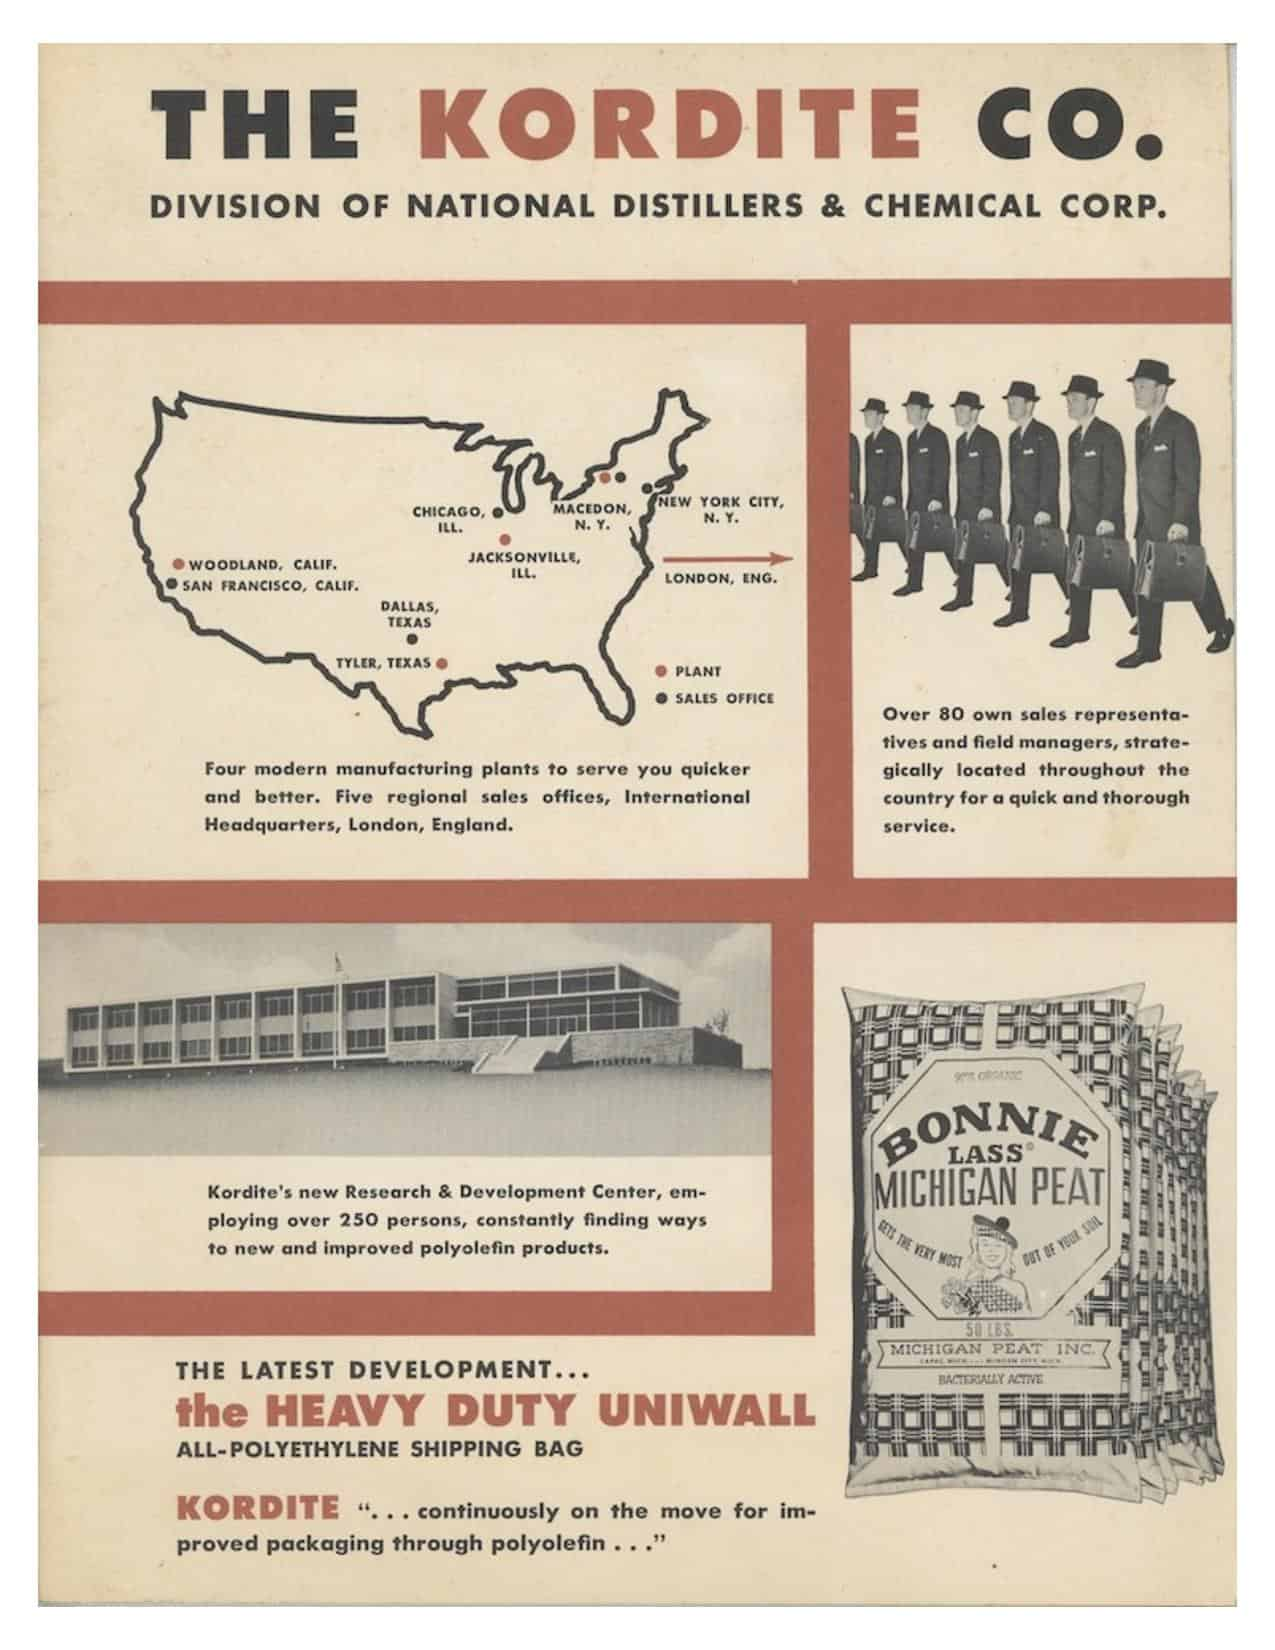 A brochure from the time period when Kordite was owned by National Distillers